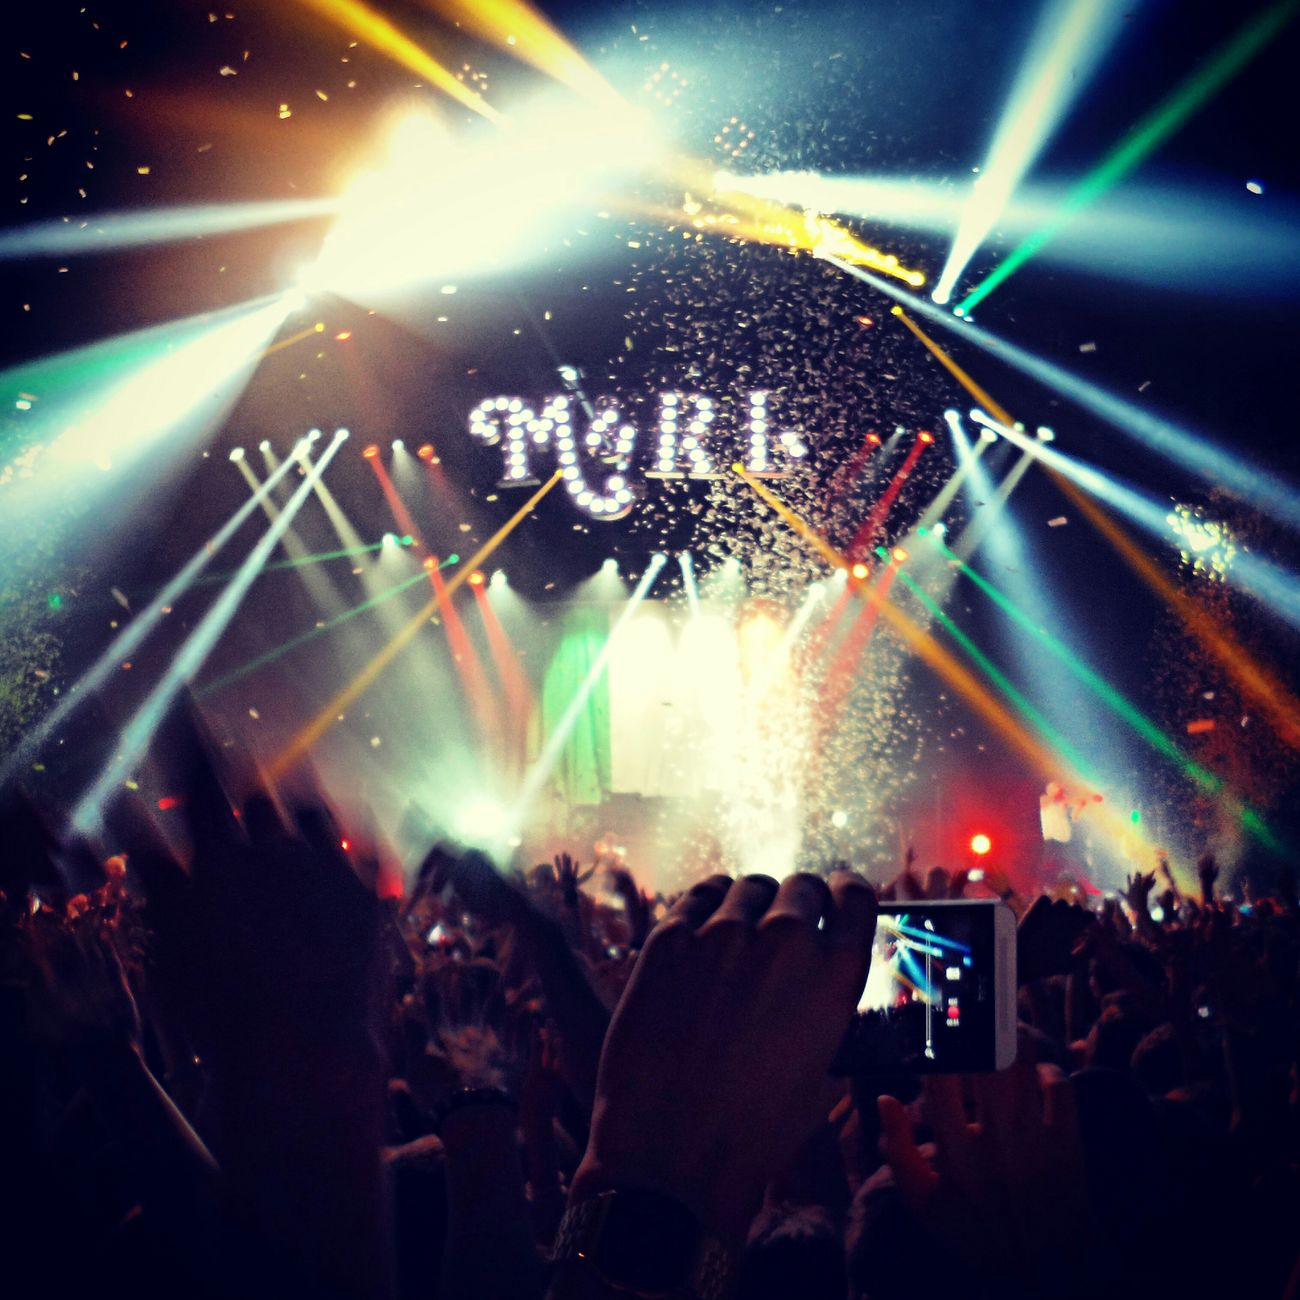 Concert Macklemore & Ryan Lewis Lights HTC_photography Zurich, Switzerland